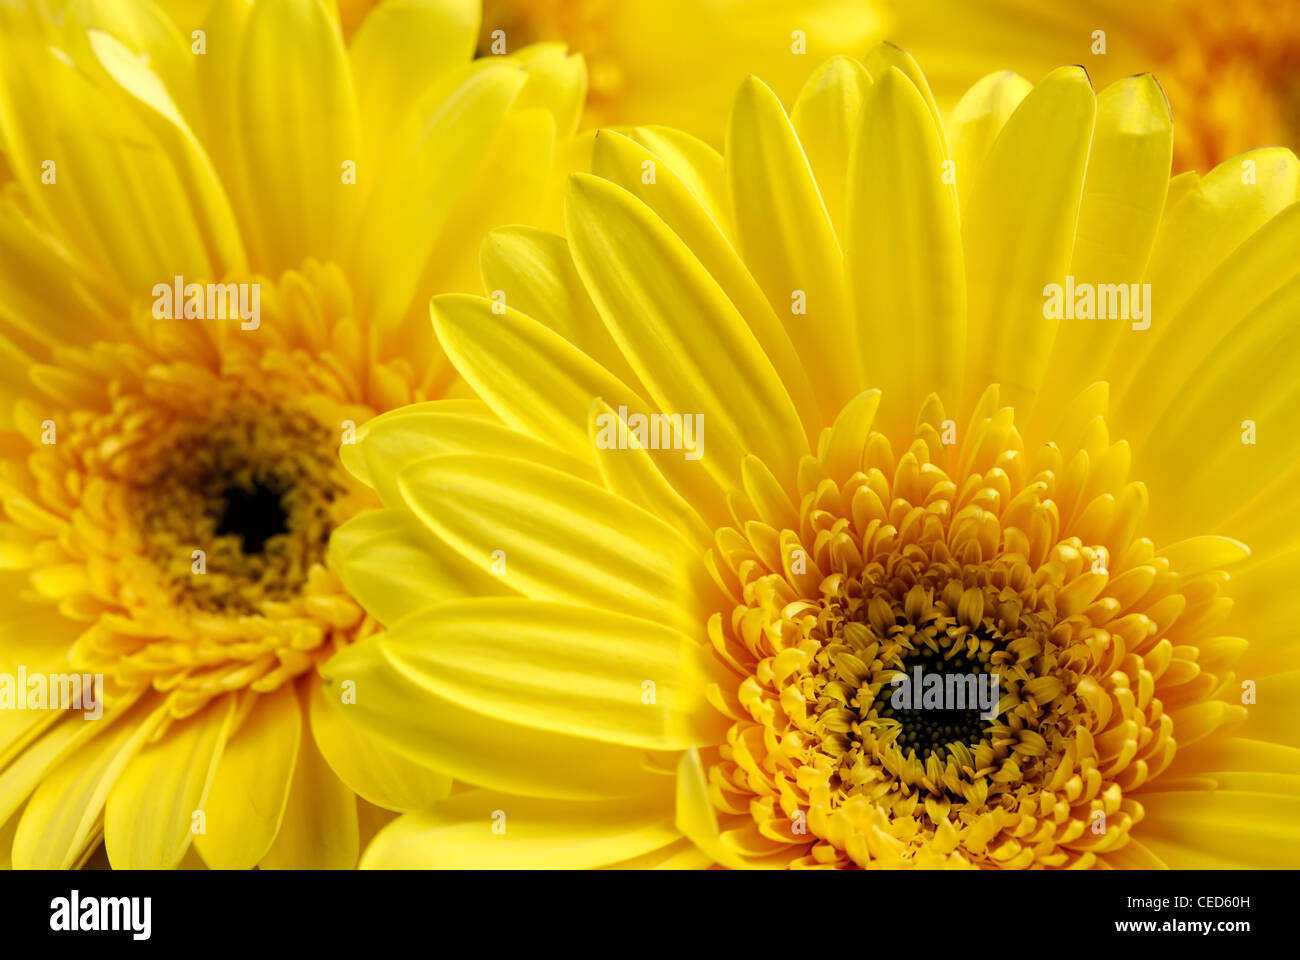 Round yellow flowers stock photos round yellow flowers stock yellow flowers background stock image mightylinksfo